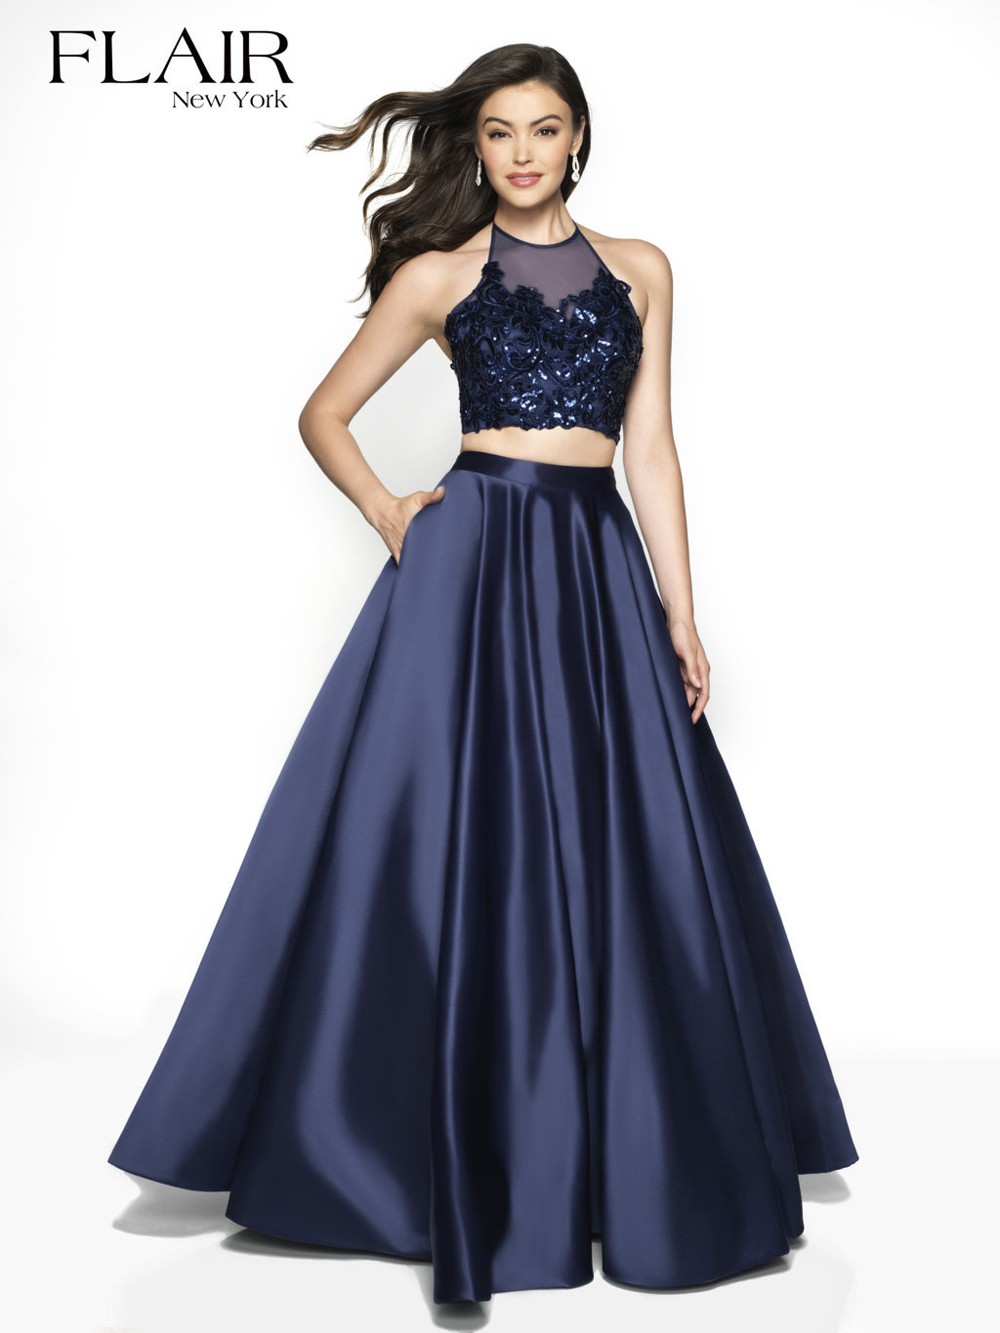 a4772464 Flair NY 19003 Halter Top Two Piece Prom Dress